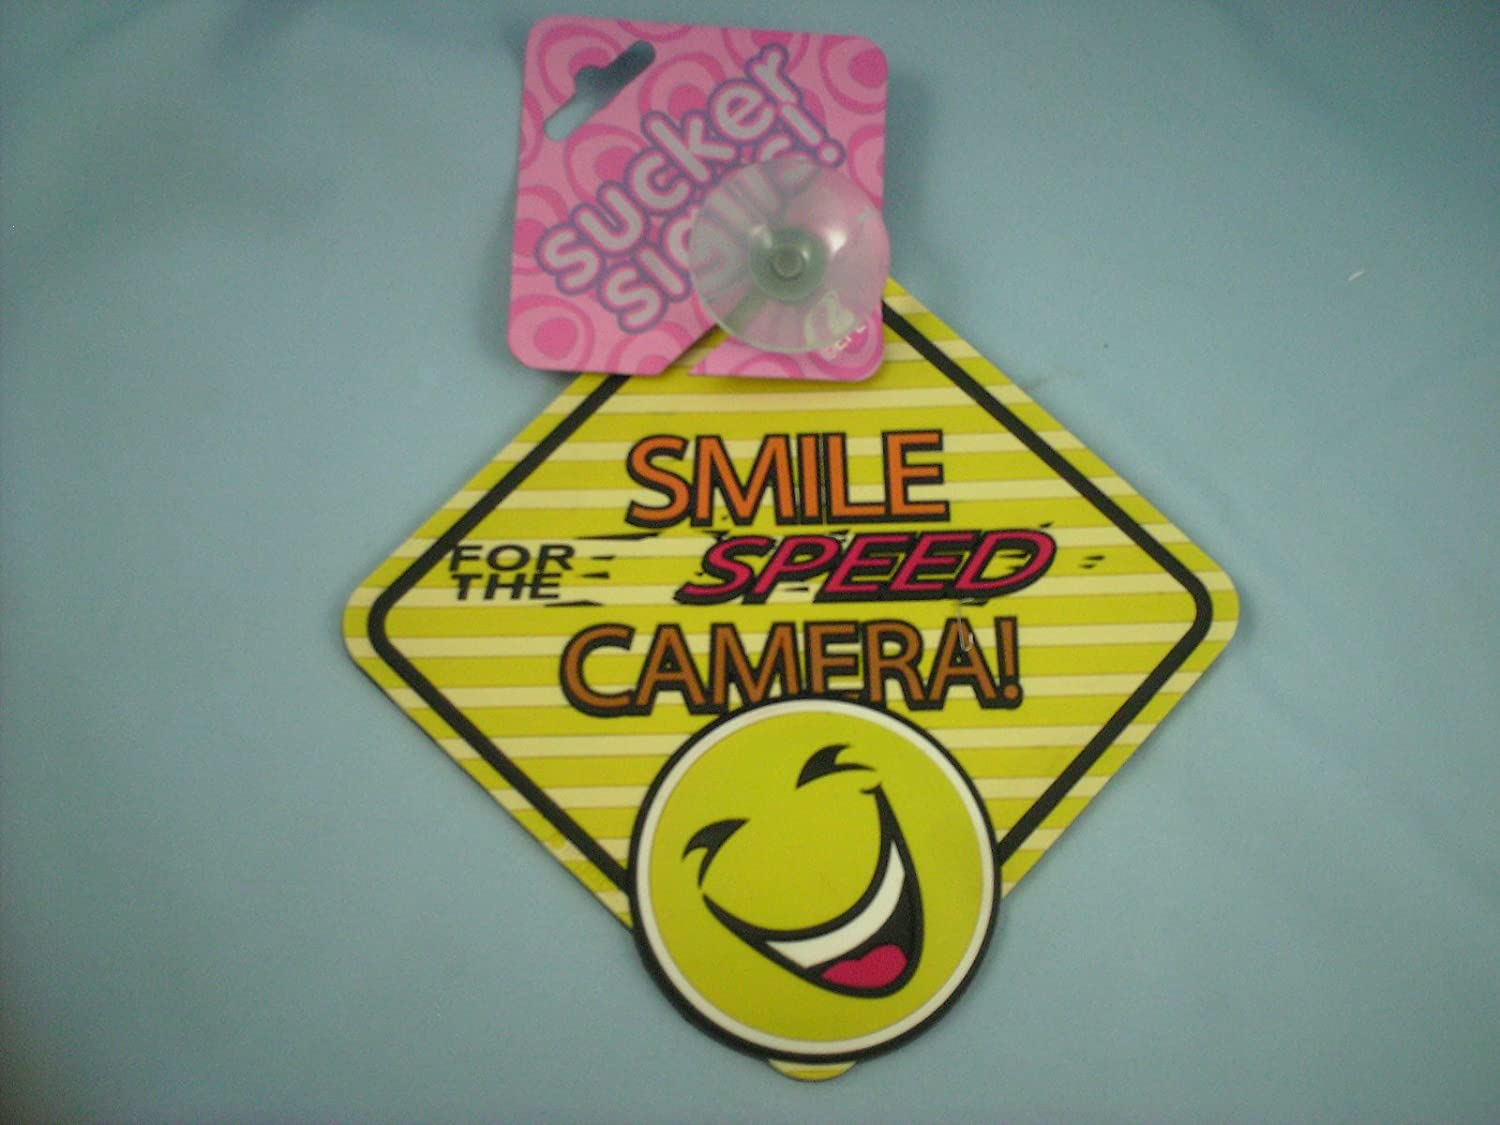 Smile for the SPEED Camera! novalty car sign with window sucker 58819